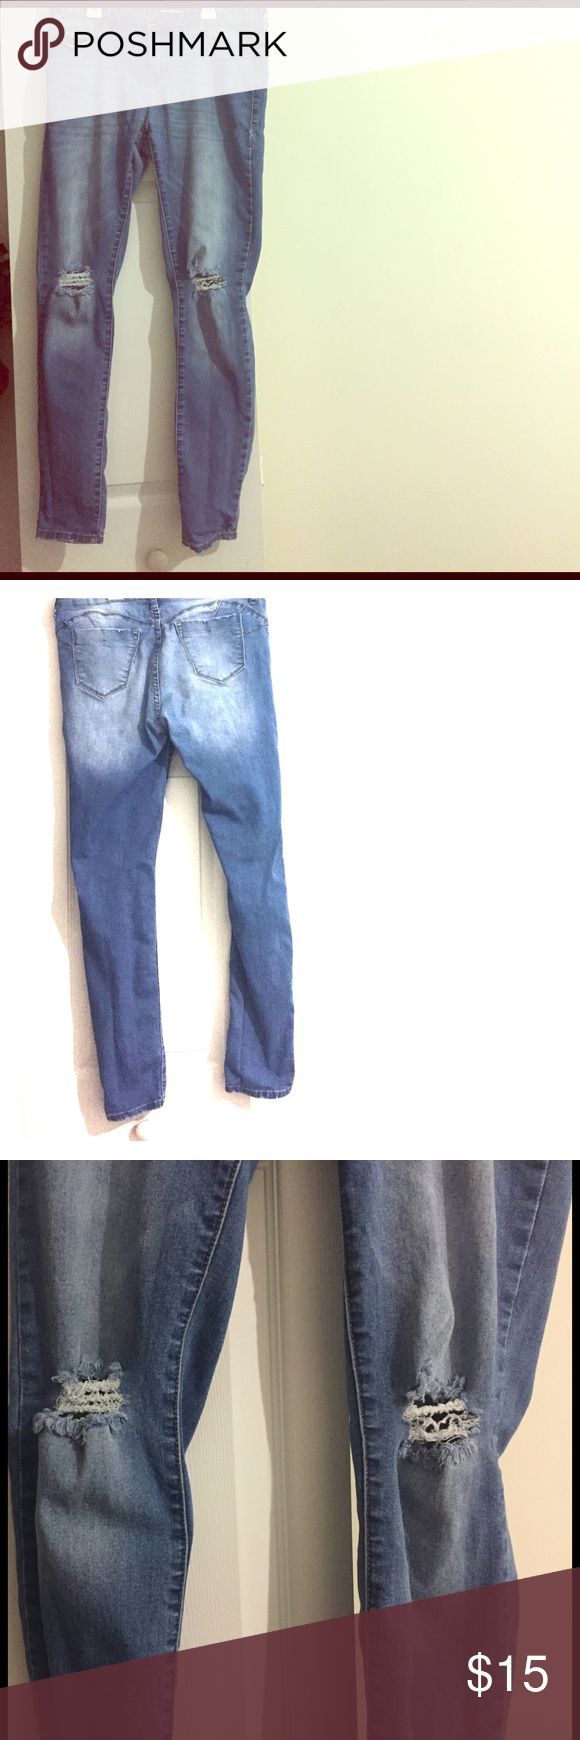 Wet Seal Blue Asphalt brand distressed denim jeans Wet Seal Blue Asphalt brand distressed worn straight leg denim jeans. I bought it already distressed. Bought in 2015, but kept in good condition ever since. Size is a US 13, and a EU 31. The legs are not very long. Fits someone with shorter legs. Wet Seal Jeans Straight Leg